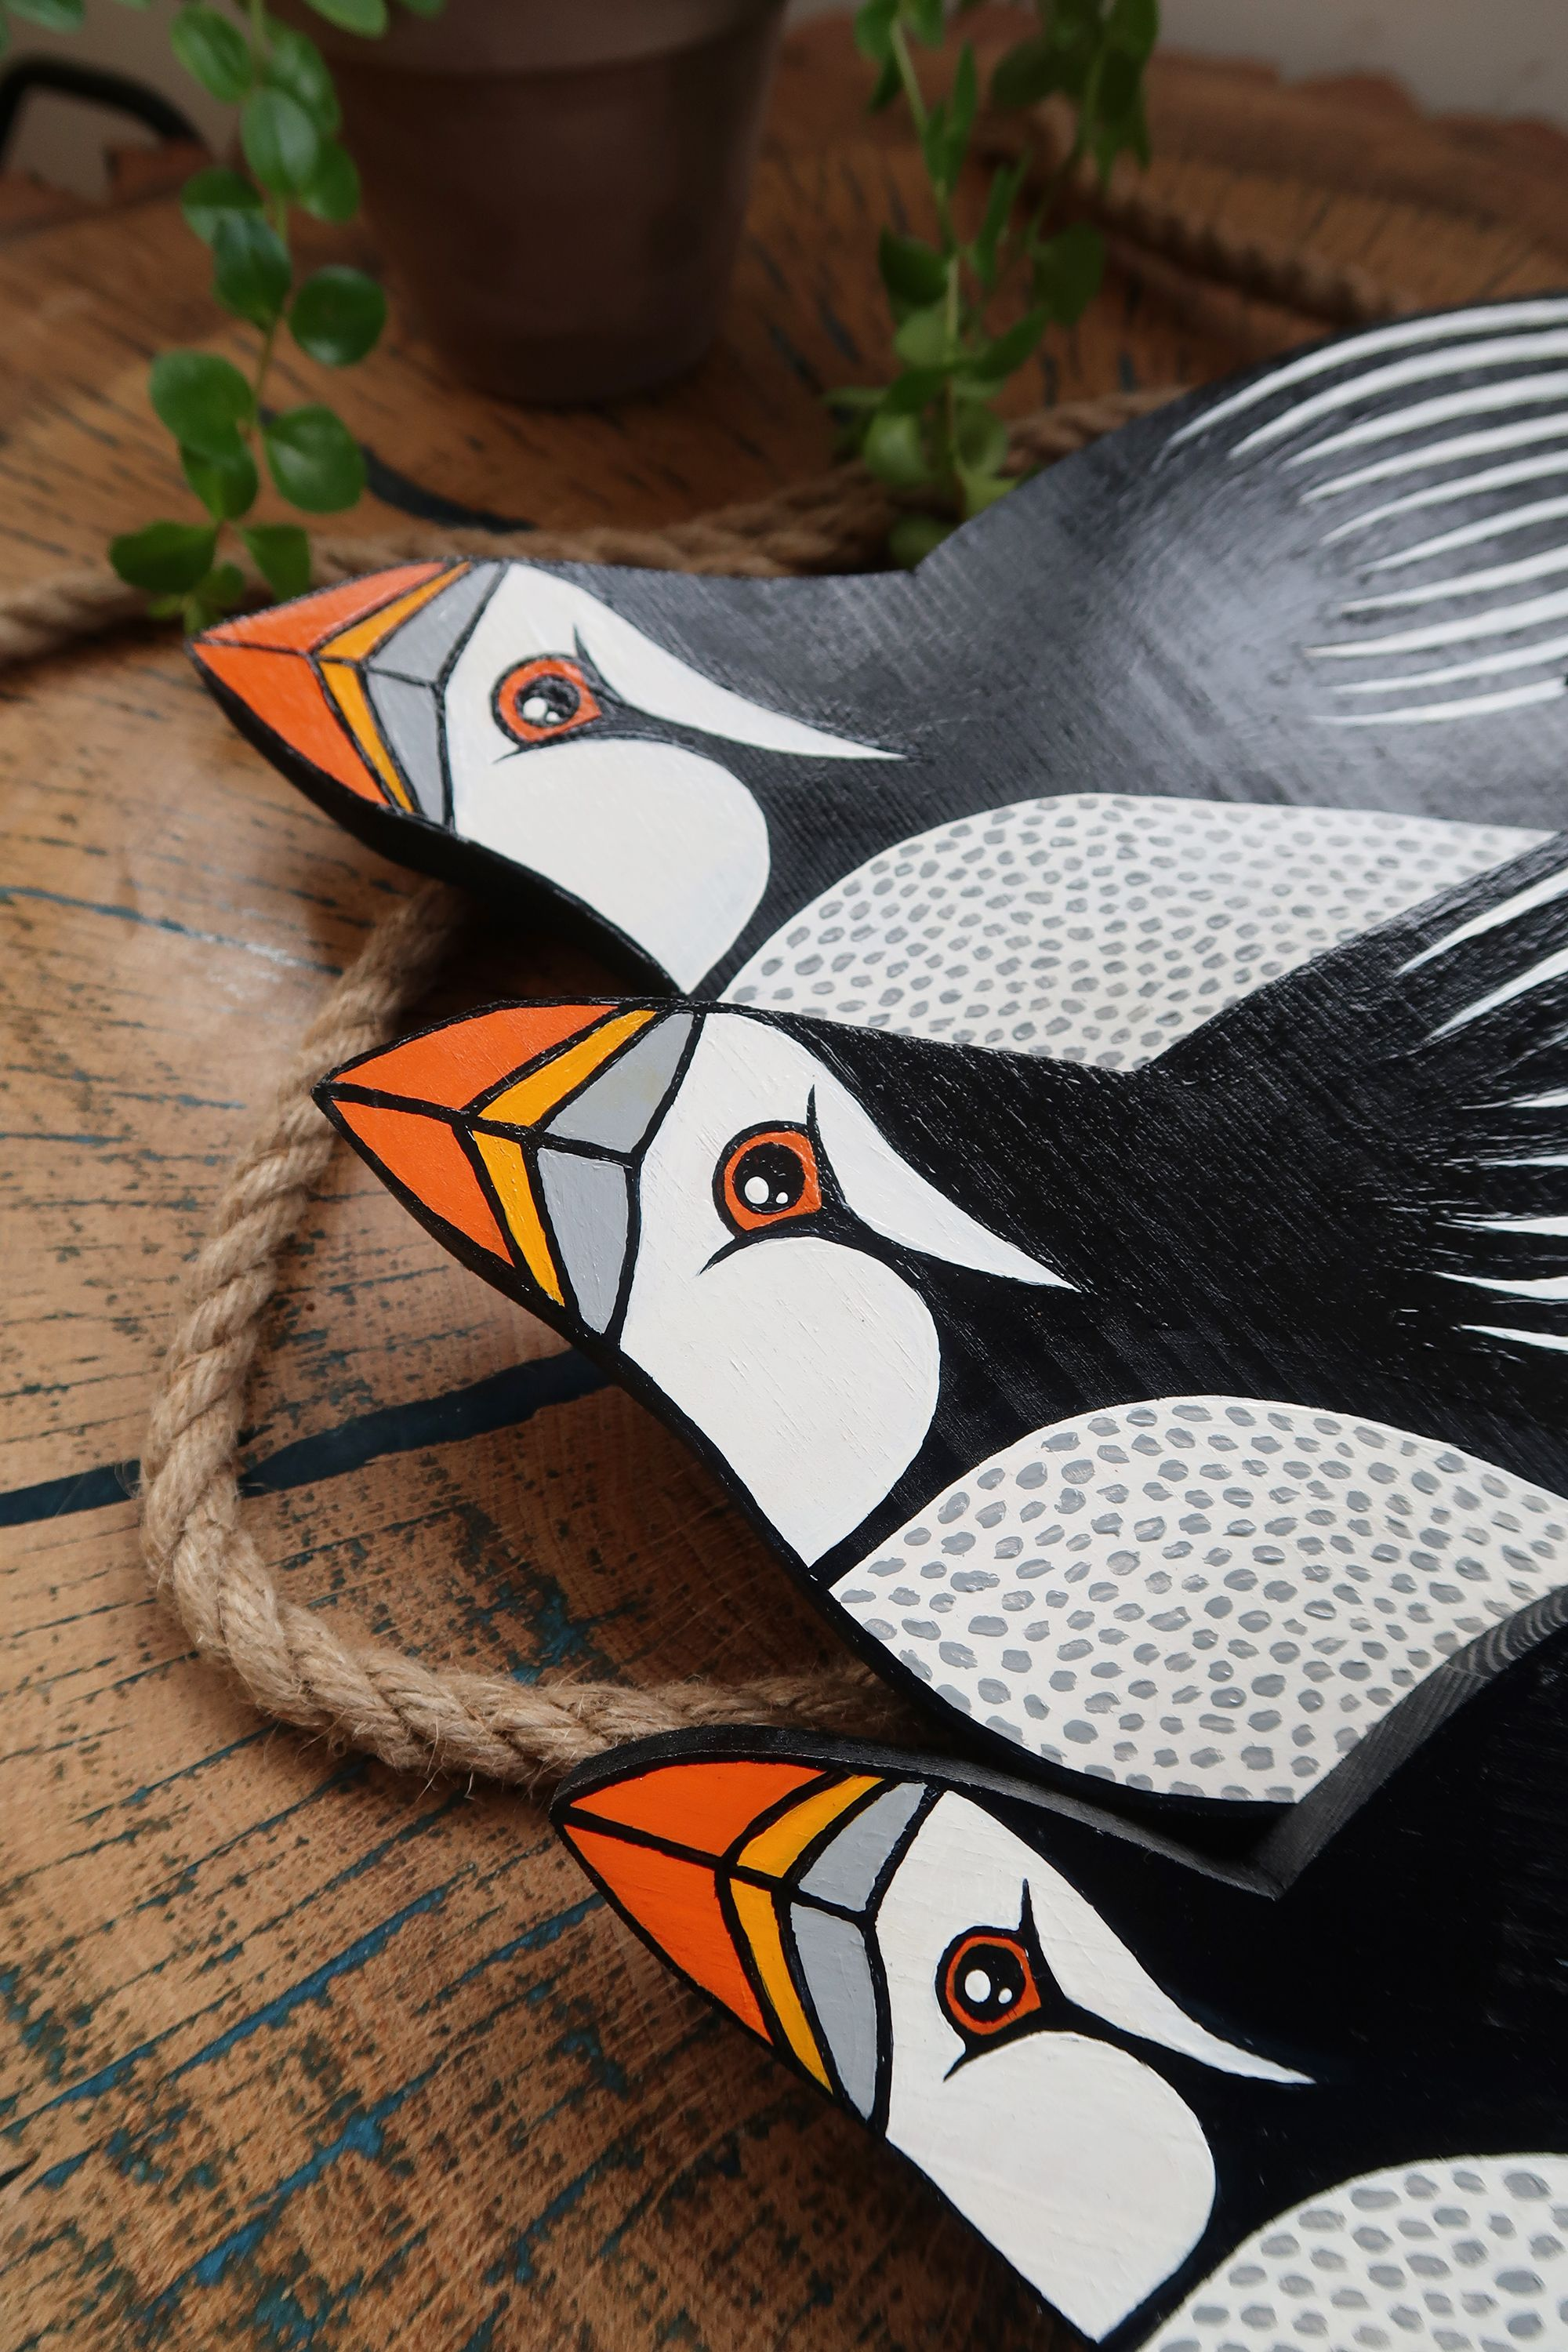 Puffin Bird Wall Decor Decoration Ornament Wooden Hand Painted Black And White Home Interiors Wooden Hand Bird Wall Decor Hand Painted